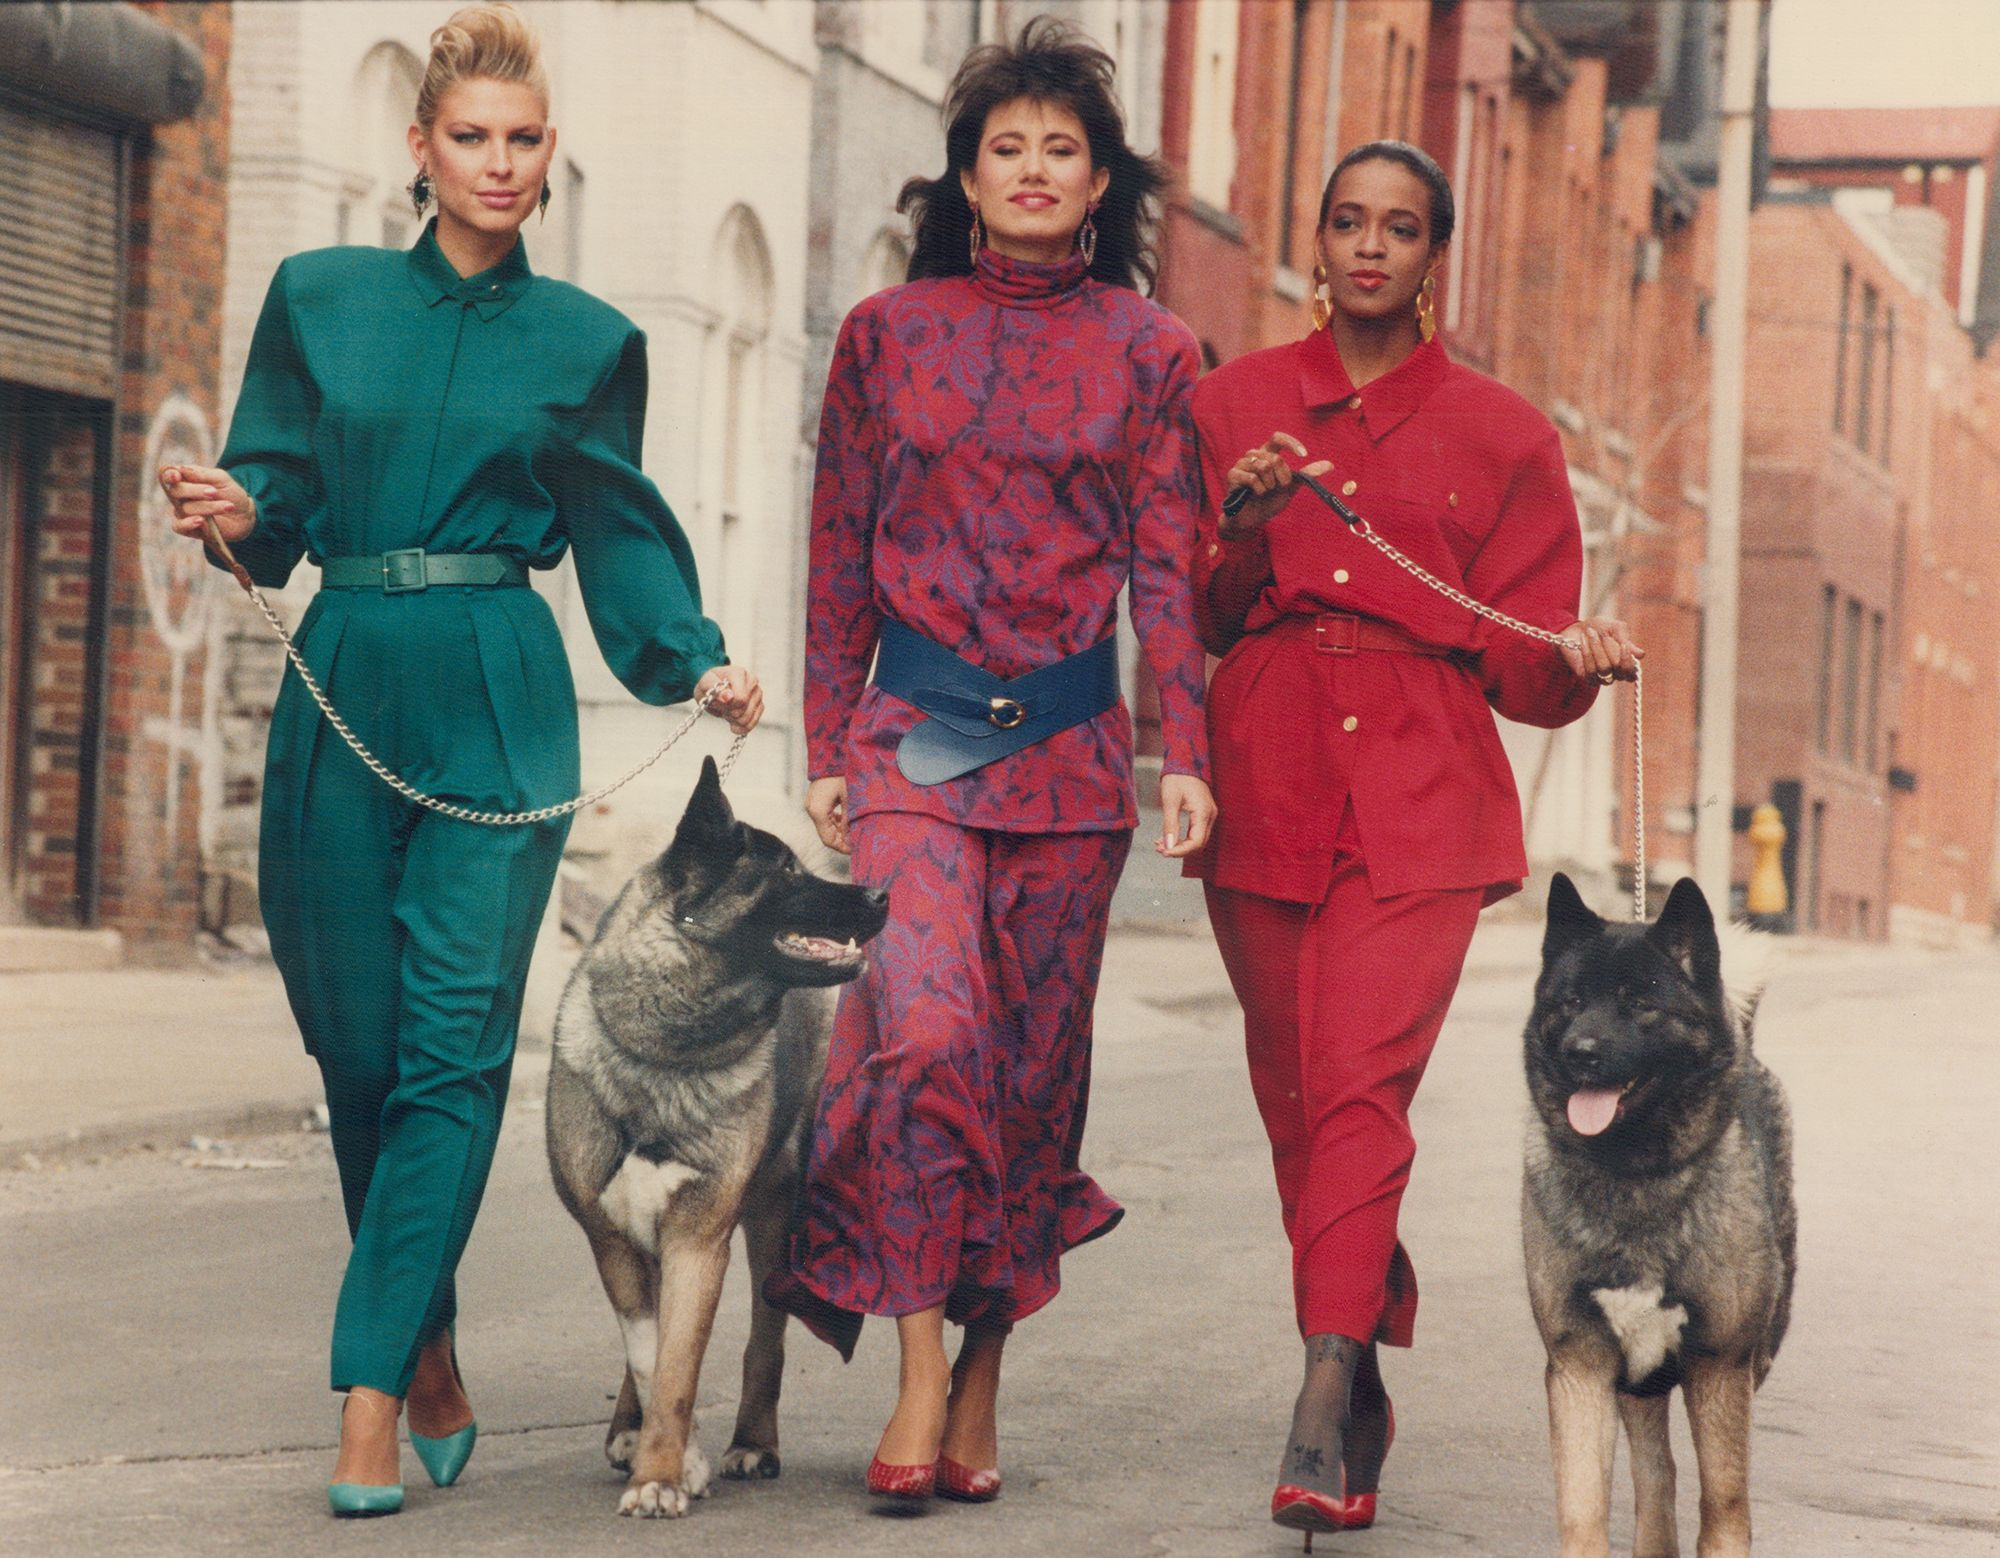 The Best Of 1980s Fashion Vintage 80s Outfits And Fashion Trends